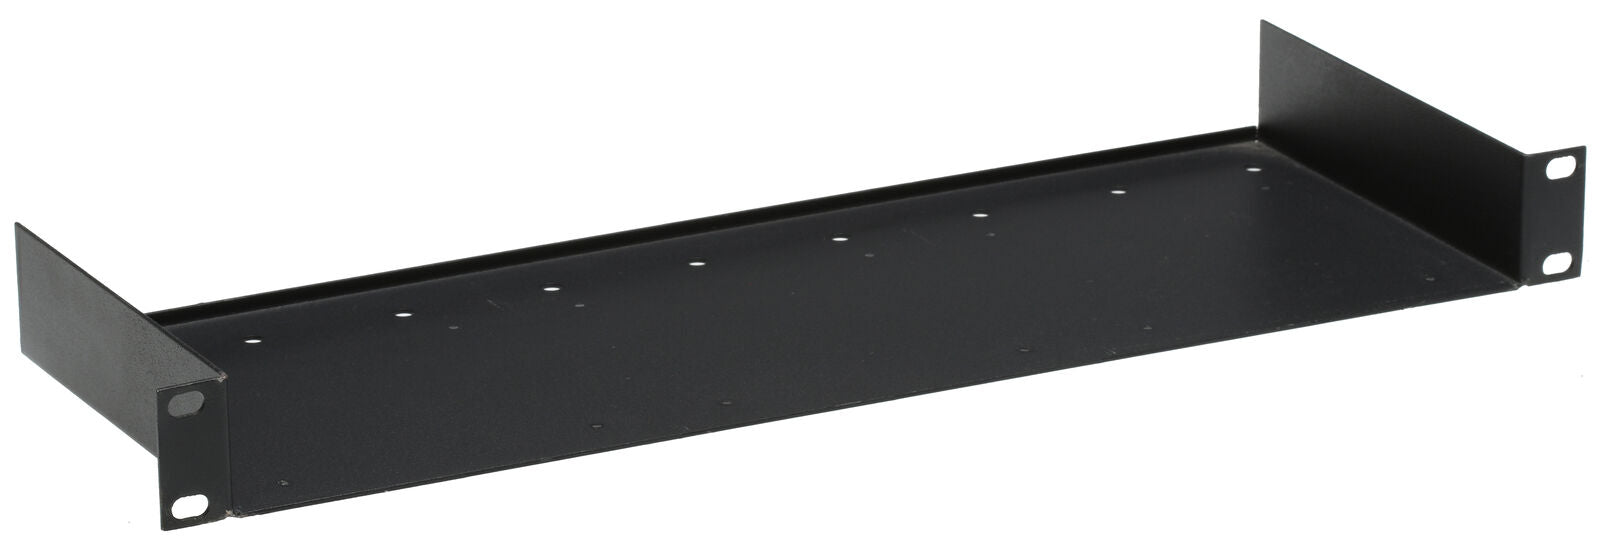 "Henry Engineering Triple 19"" Rackmount Shelf Tray 1U for Matchbox HD Units etc [Used]-www.prostudioconnection.com"